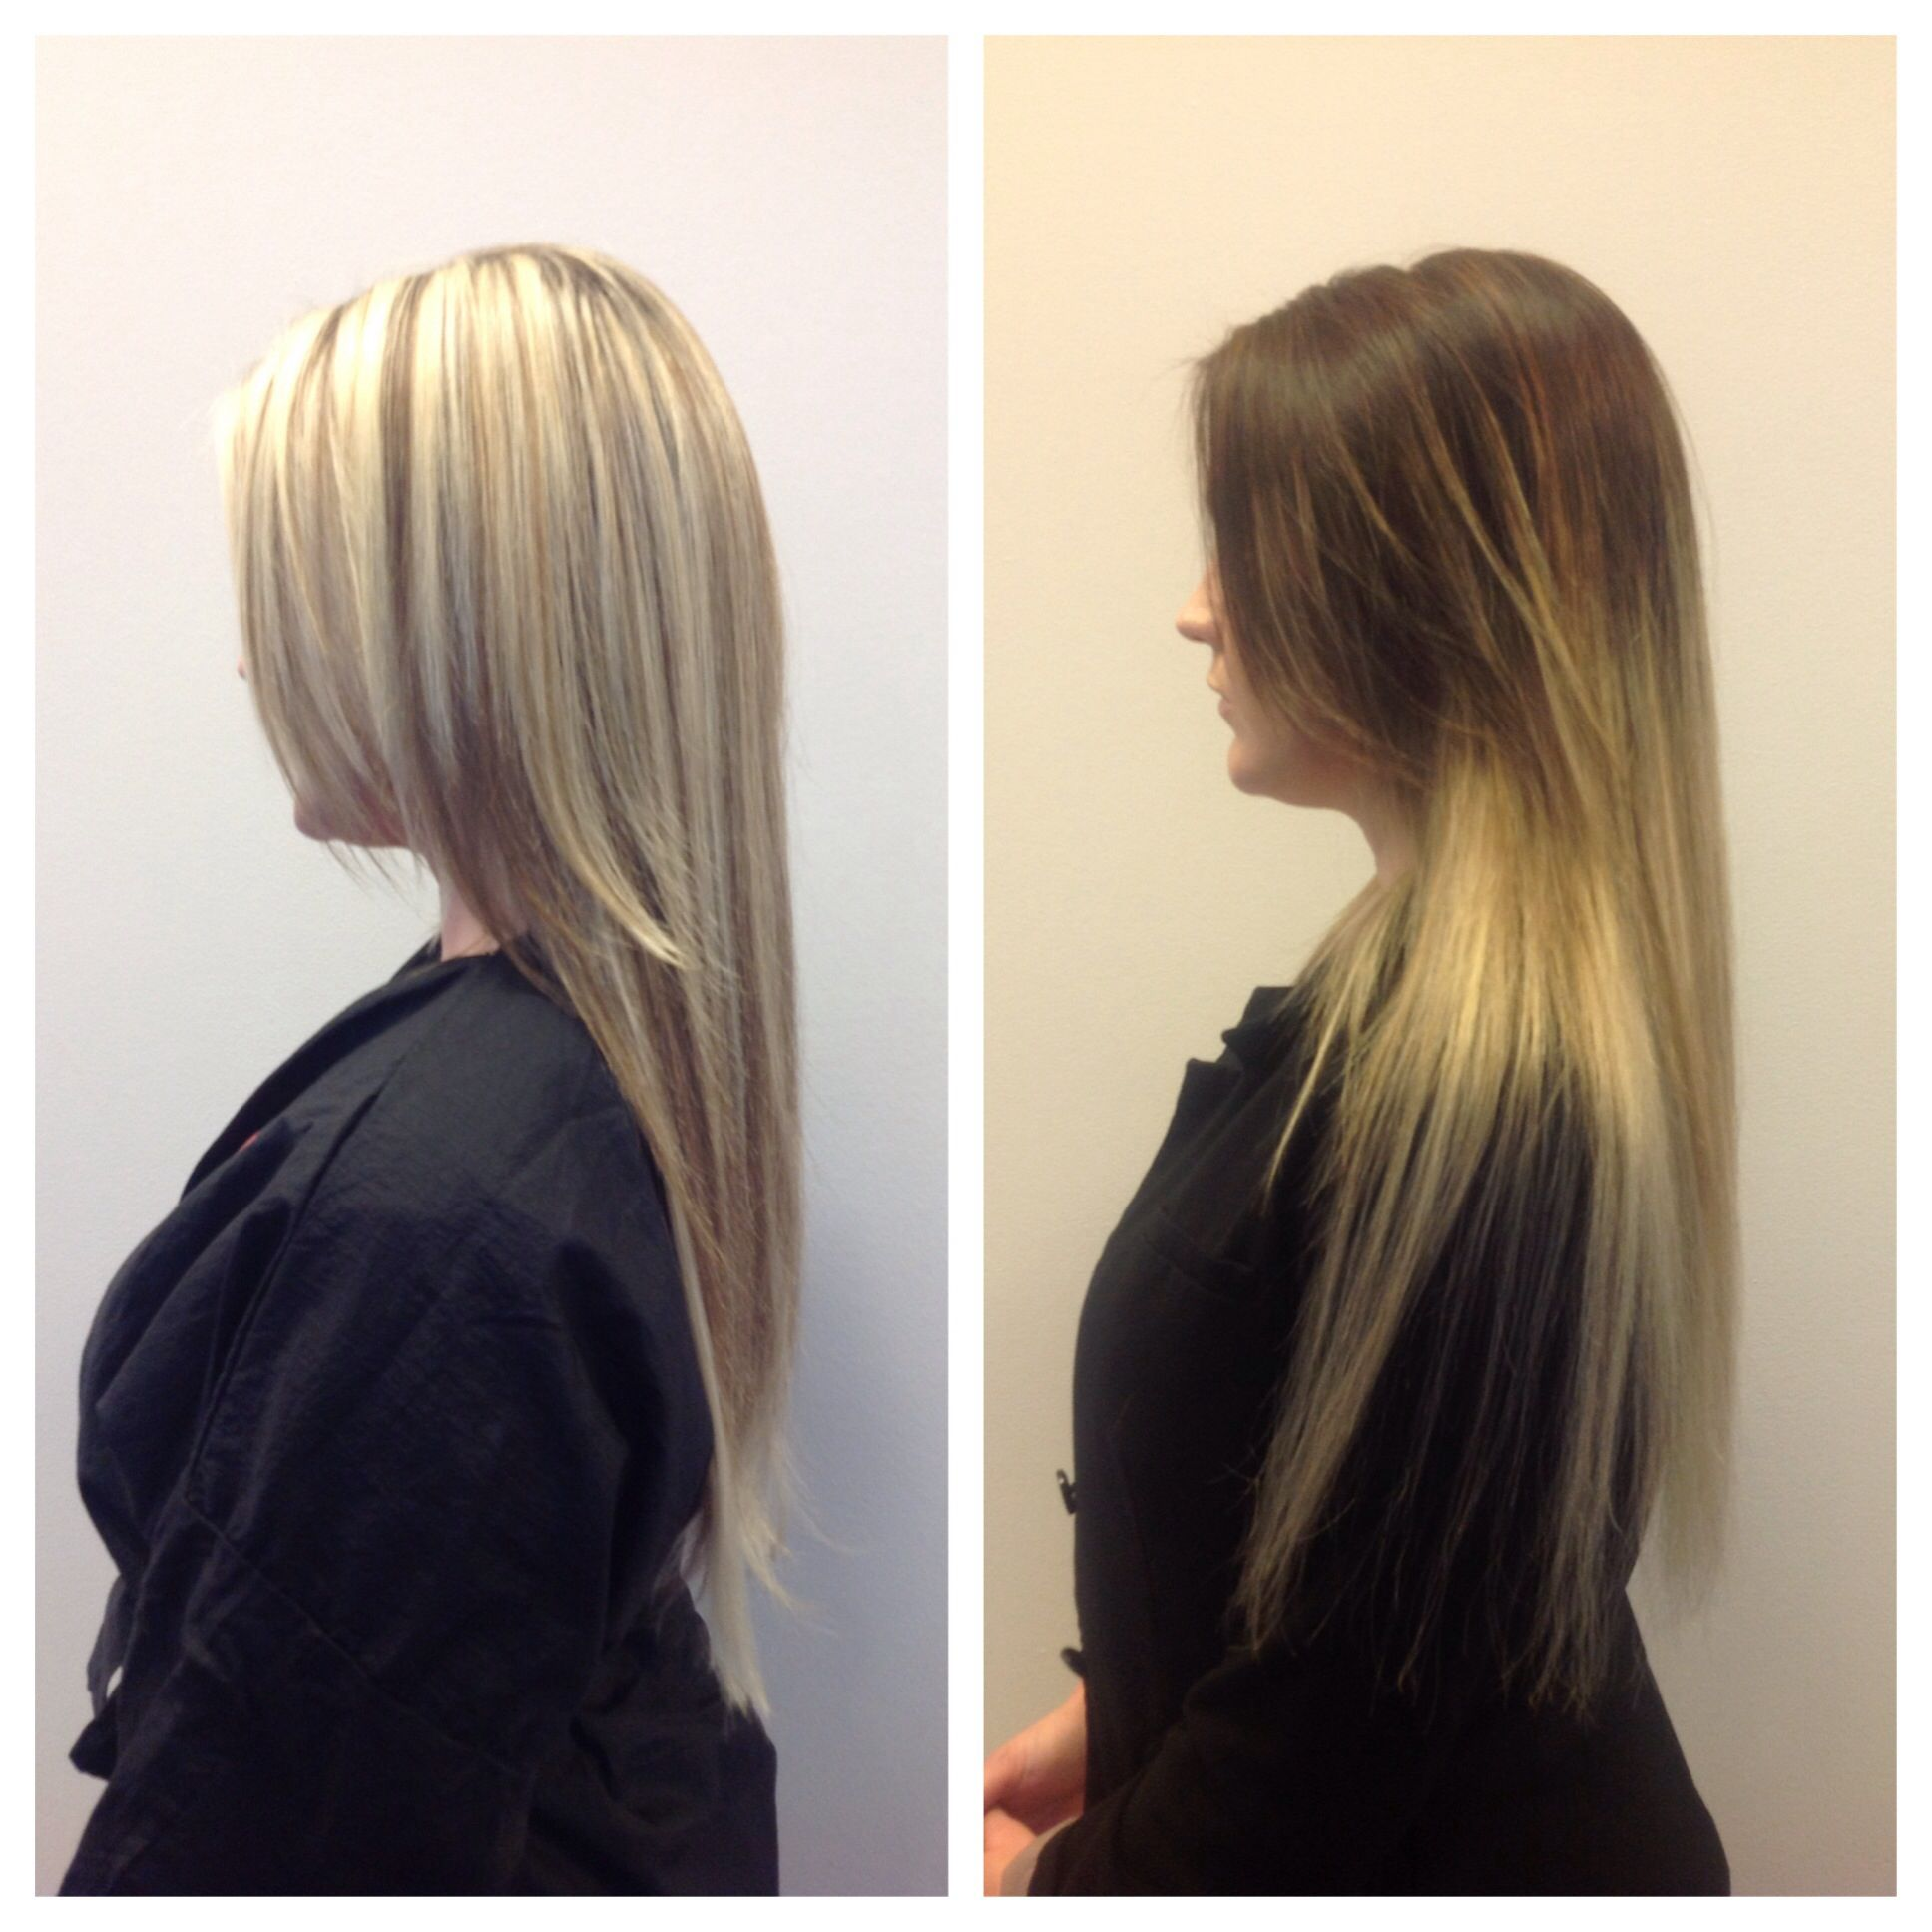 Dramatic Ombr Dres Hair Salon Scottsdale Az Before After